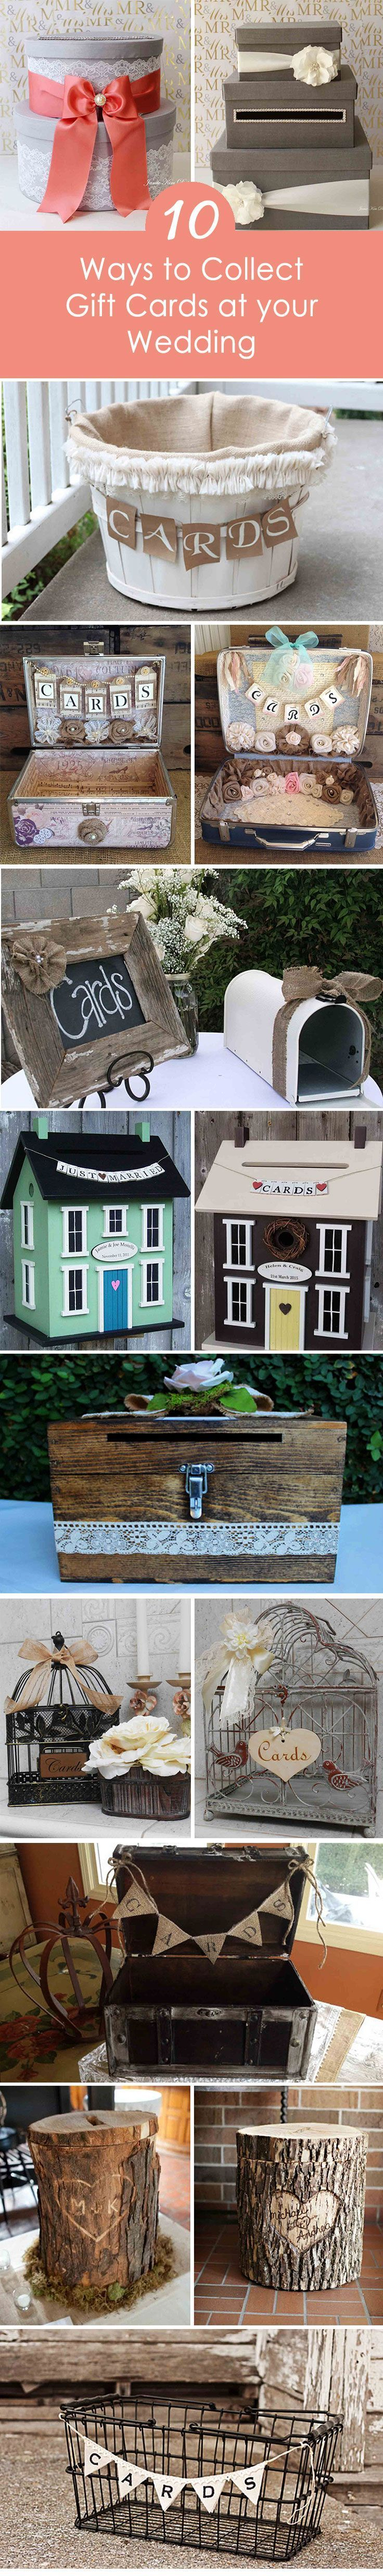 From birdcages to mailboxes and even hollowed out tree stumps, we've great  engagement ideas